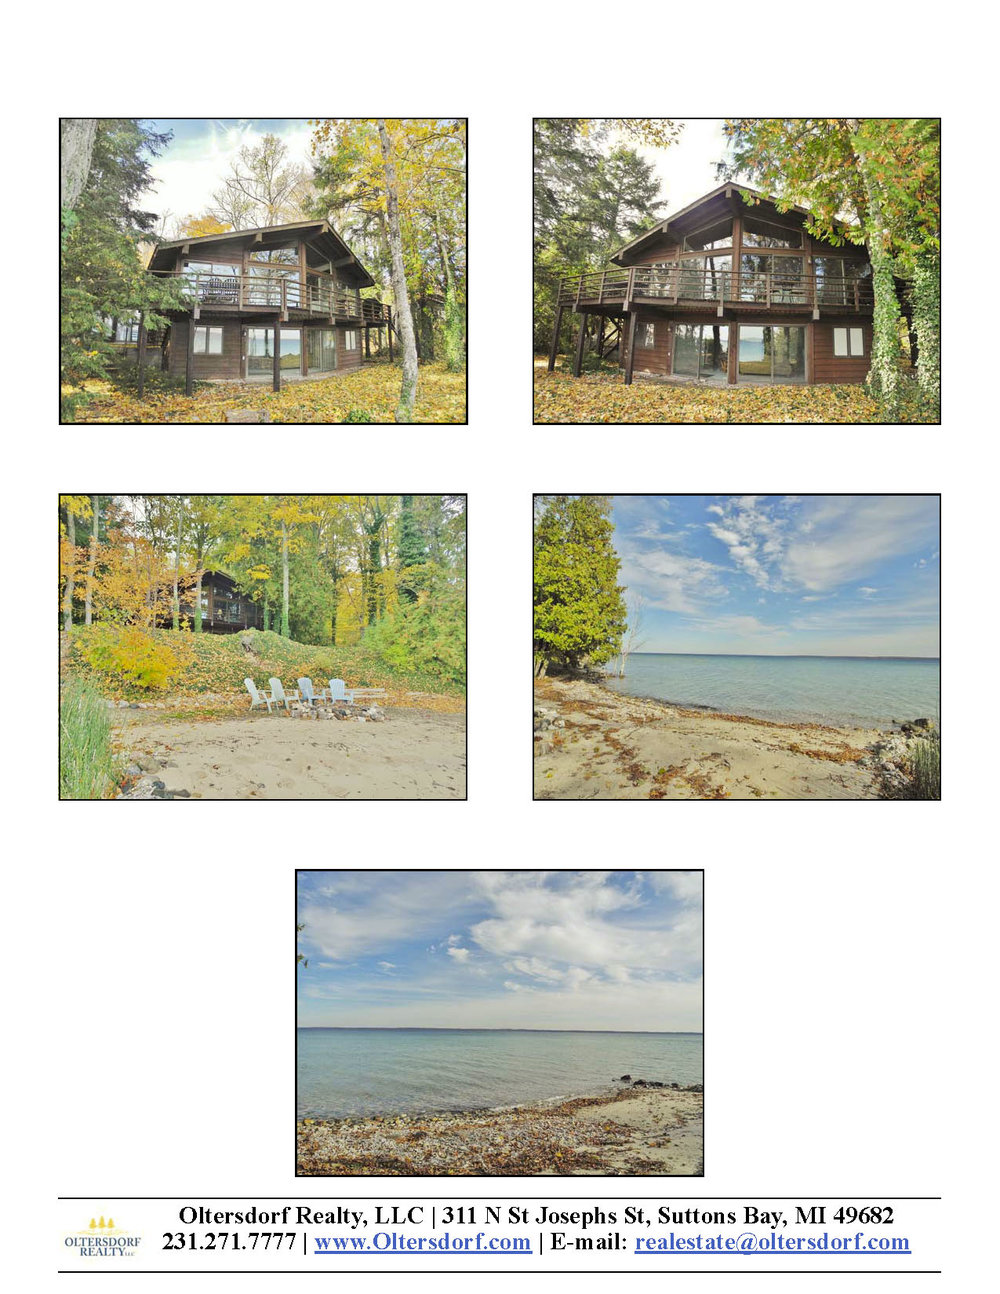 1355 S Nanagosa Trail Suttons Bay – FOR SALE by Oltersdorf Realty LLC - Marketing Packet (2).jpg